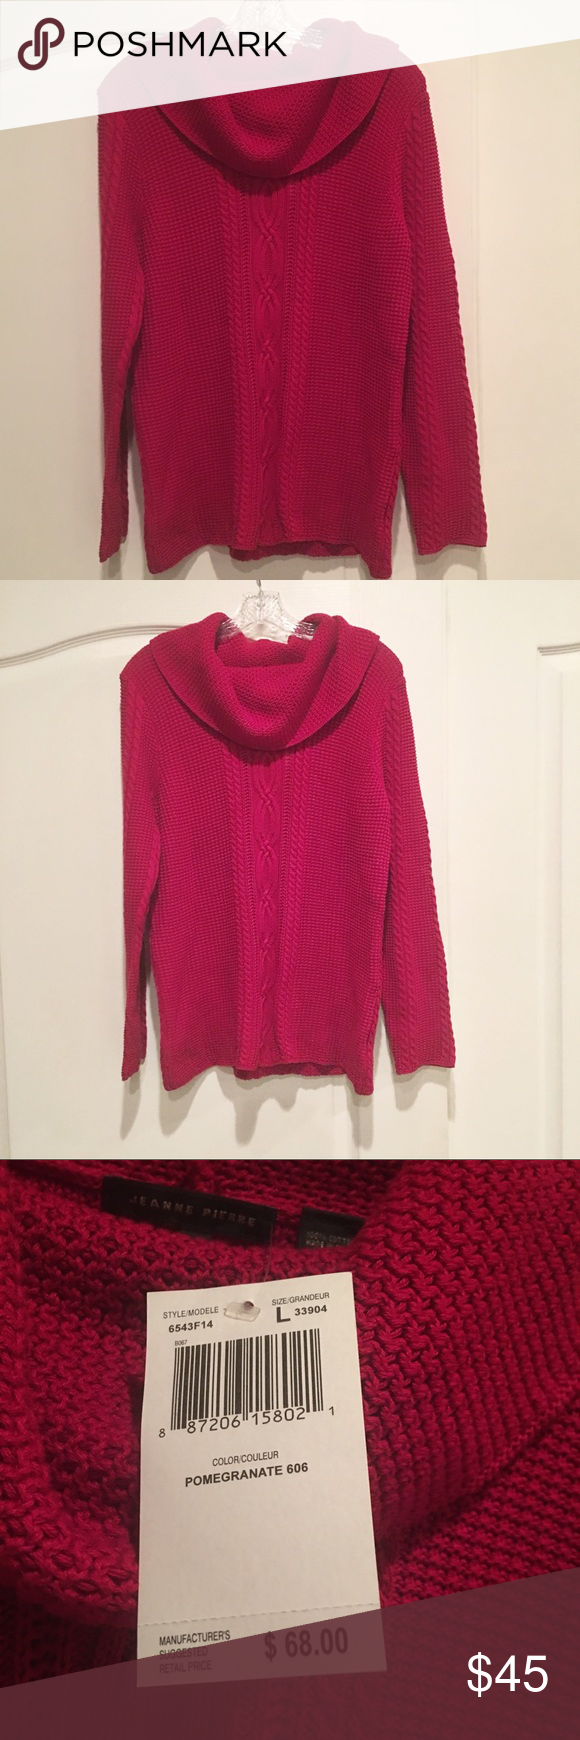 3c42074892 NWT Jean Pierre Red Cable Knit Cowl Neck Sweater New with Tags 100% Cotton.  Beautiful true red color. Jean Pierre Sweaters Cowl & Turtlenecks